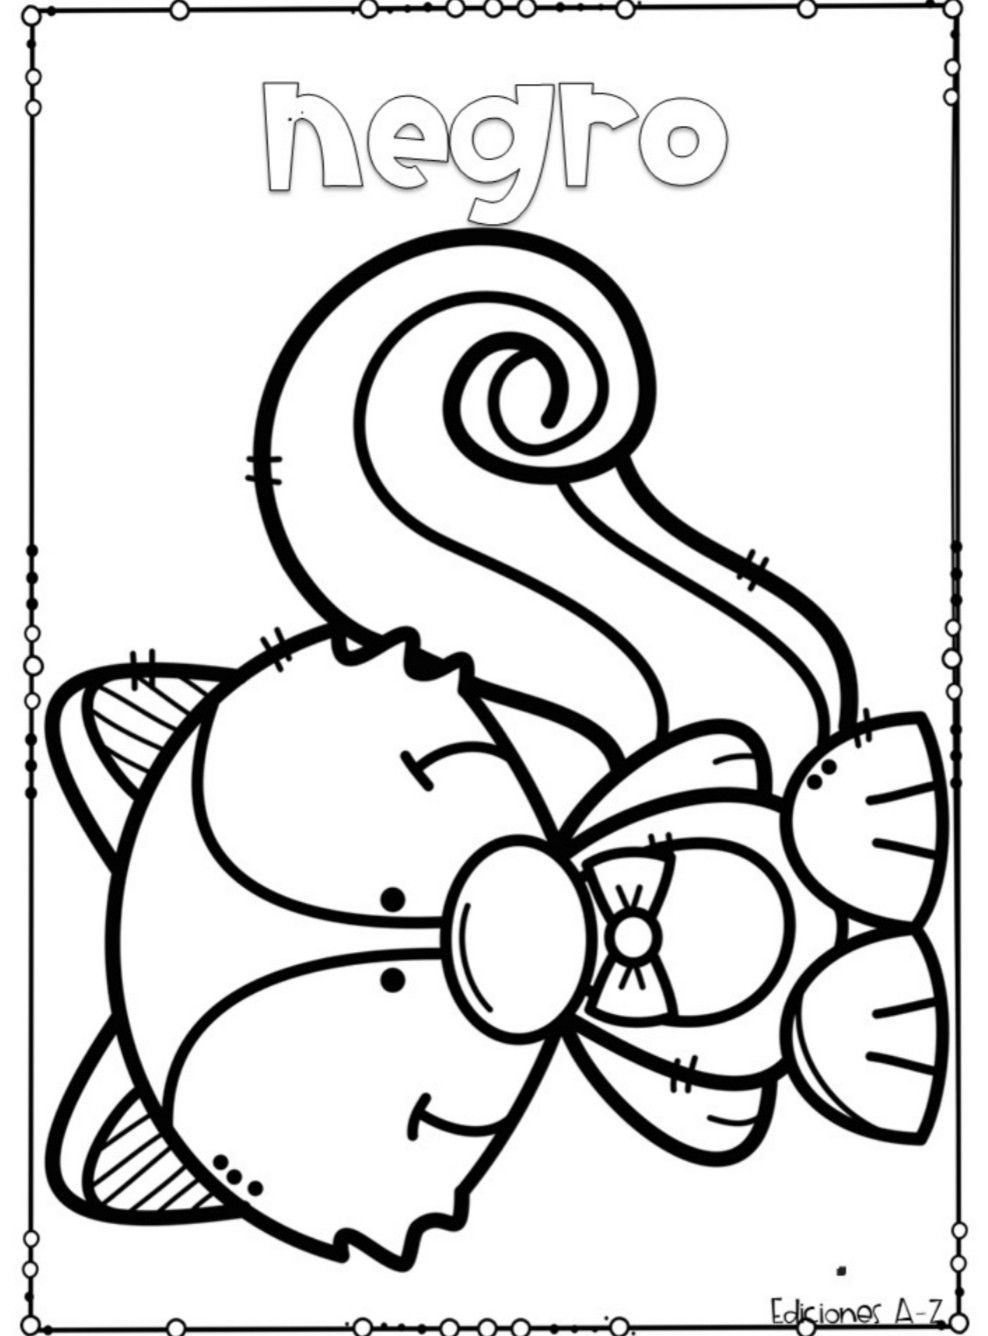 Pin By Lenie Dejong On Preescolar Coloring Pages Preschool Tracing Drawing For Kids